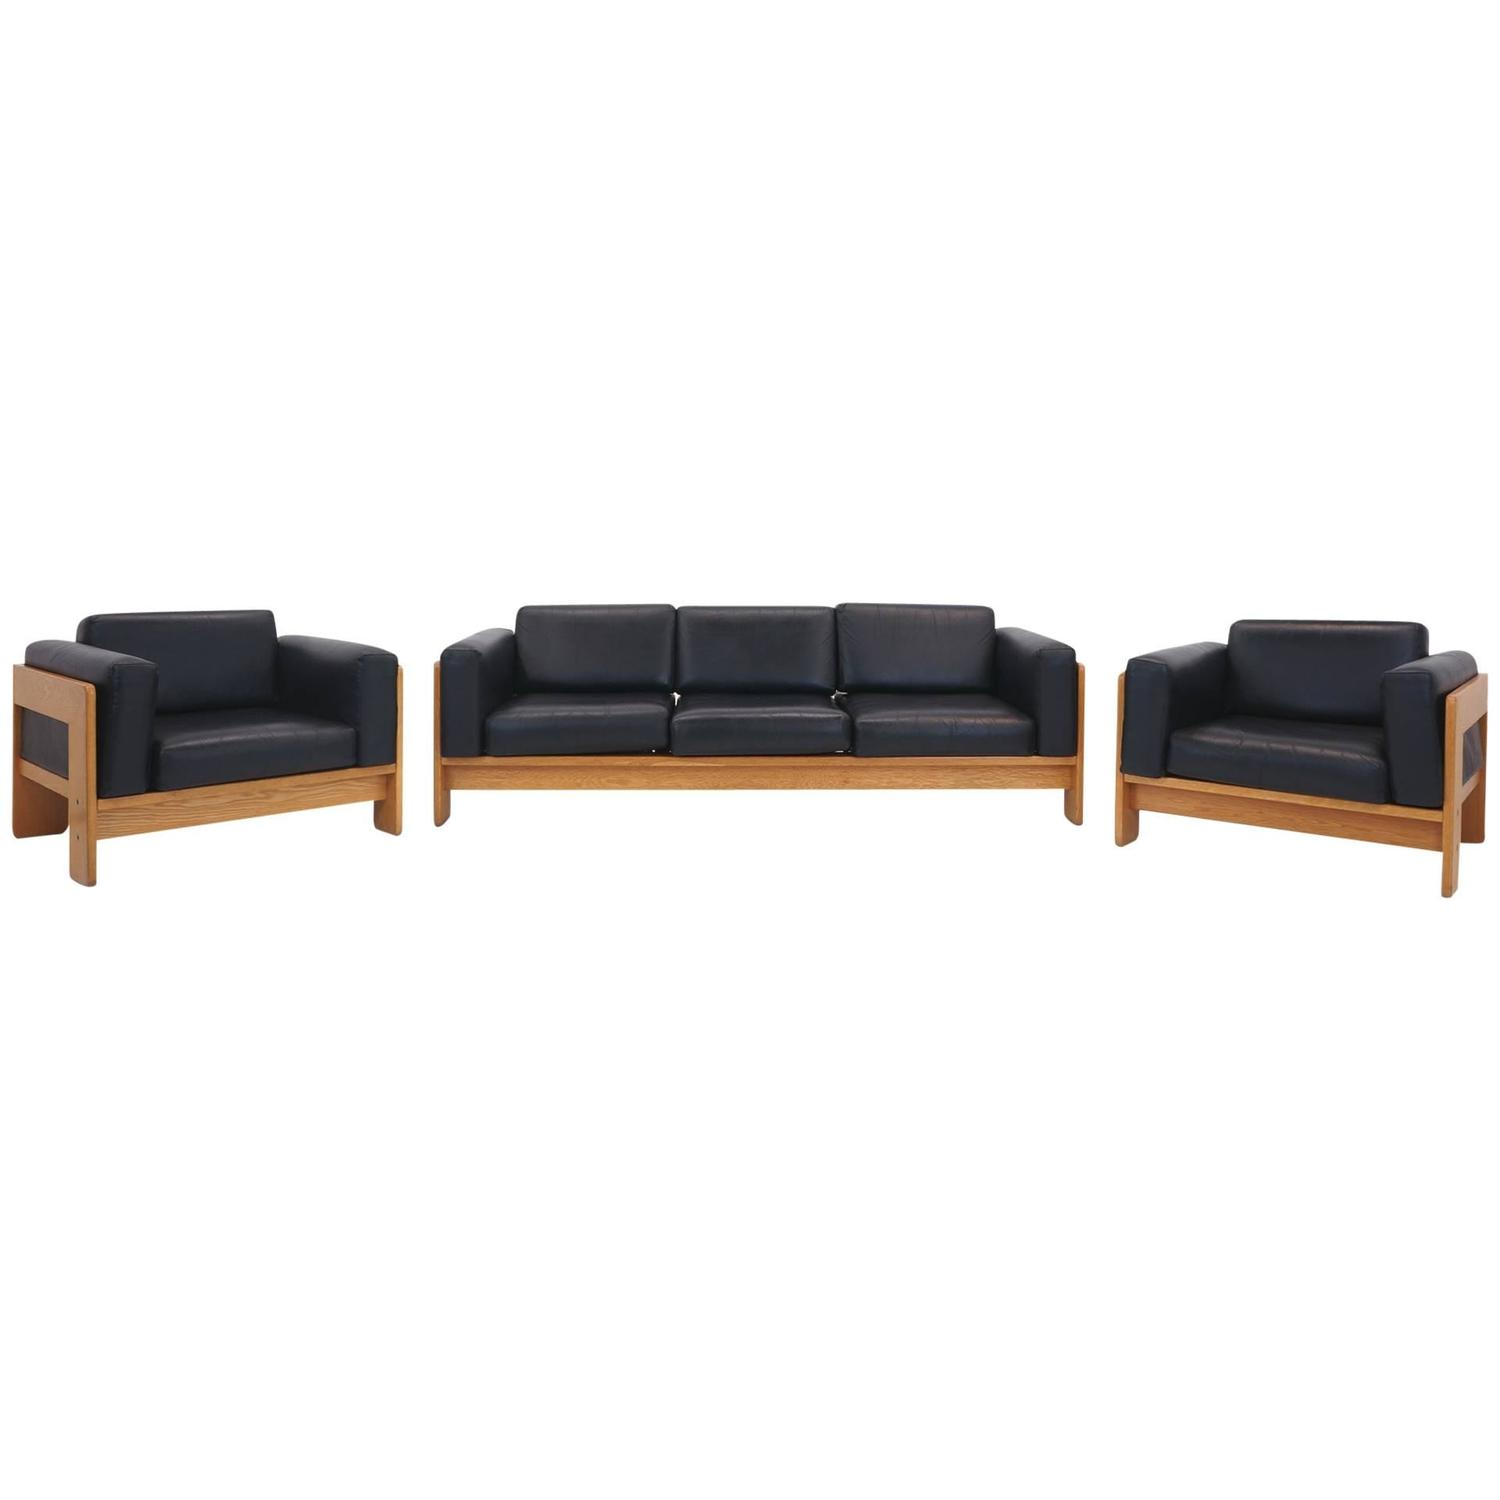 Tobia Scarpa Bastiano Walnut and Black Leather Sofa and Chairs for